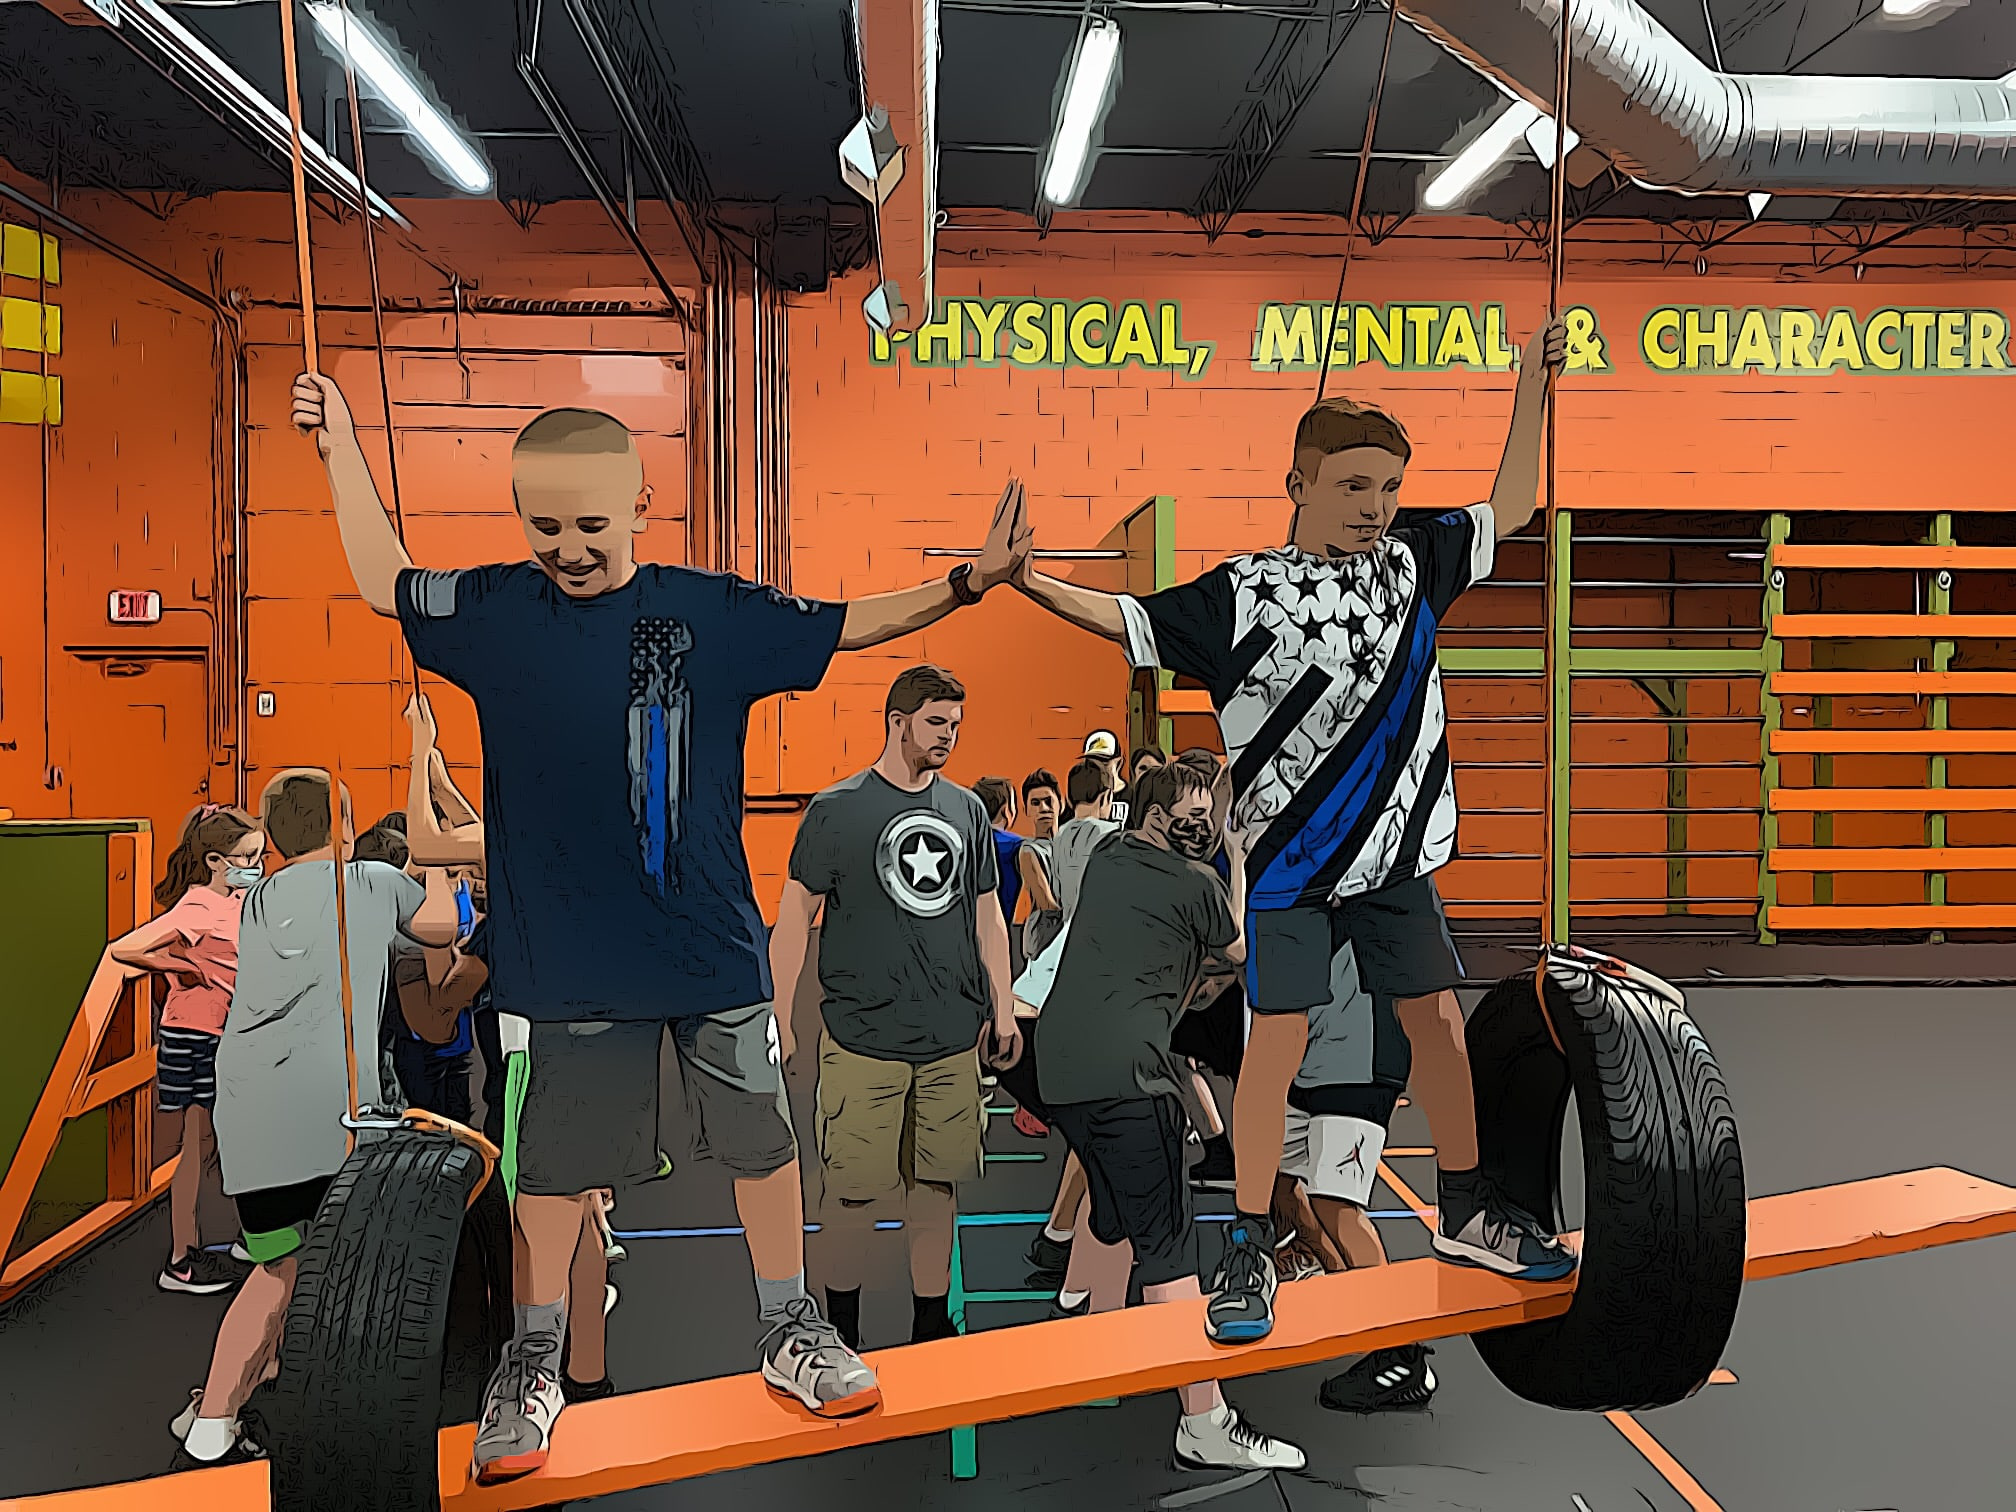 children help each other to stay on the suspended board between the tires